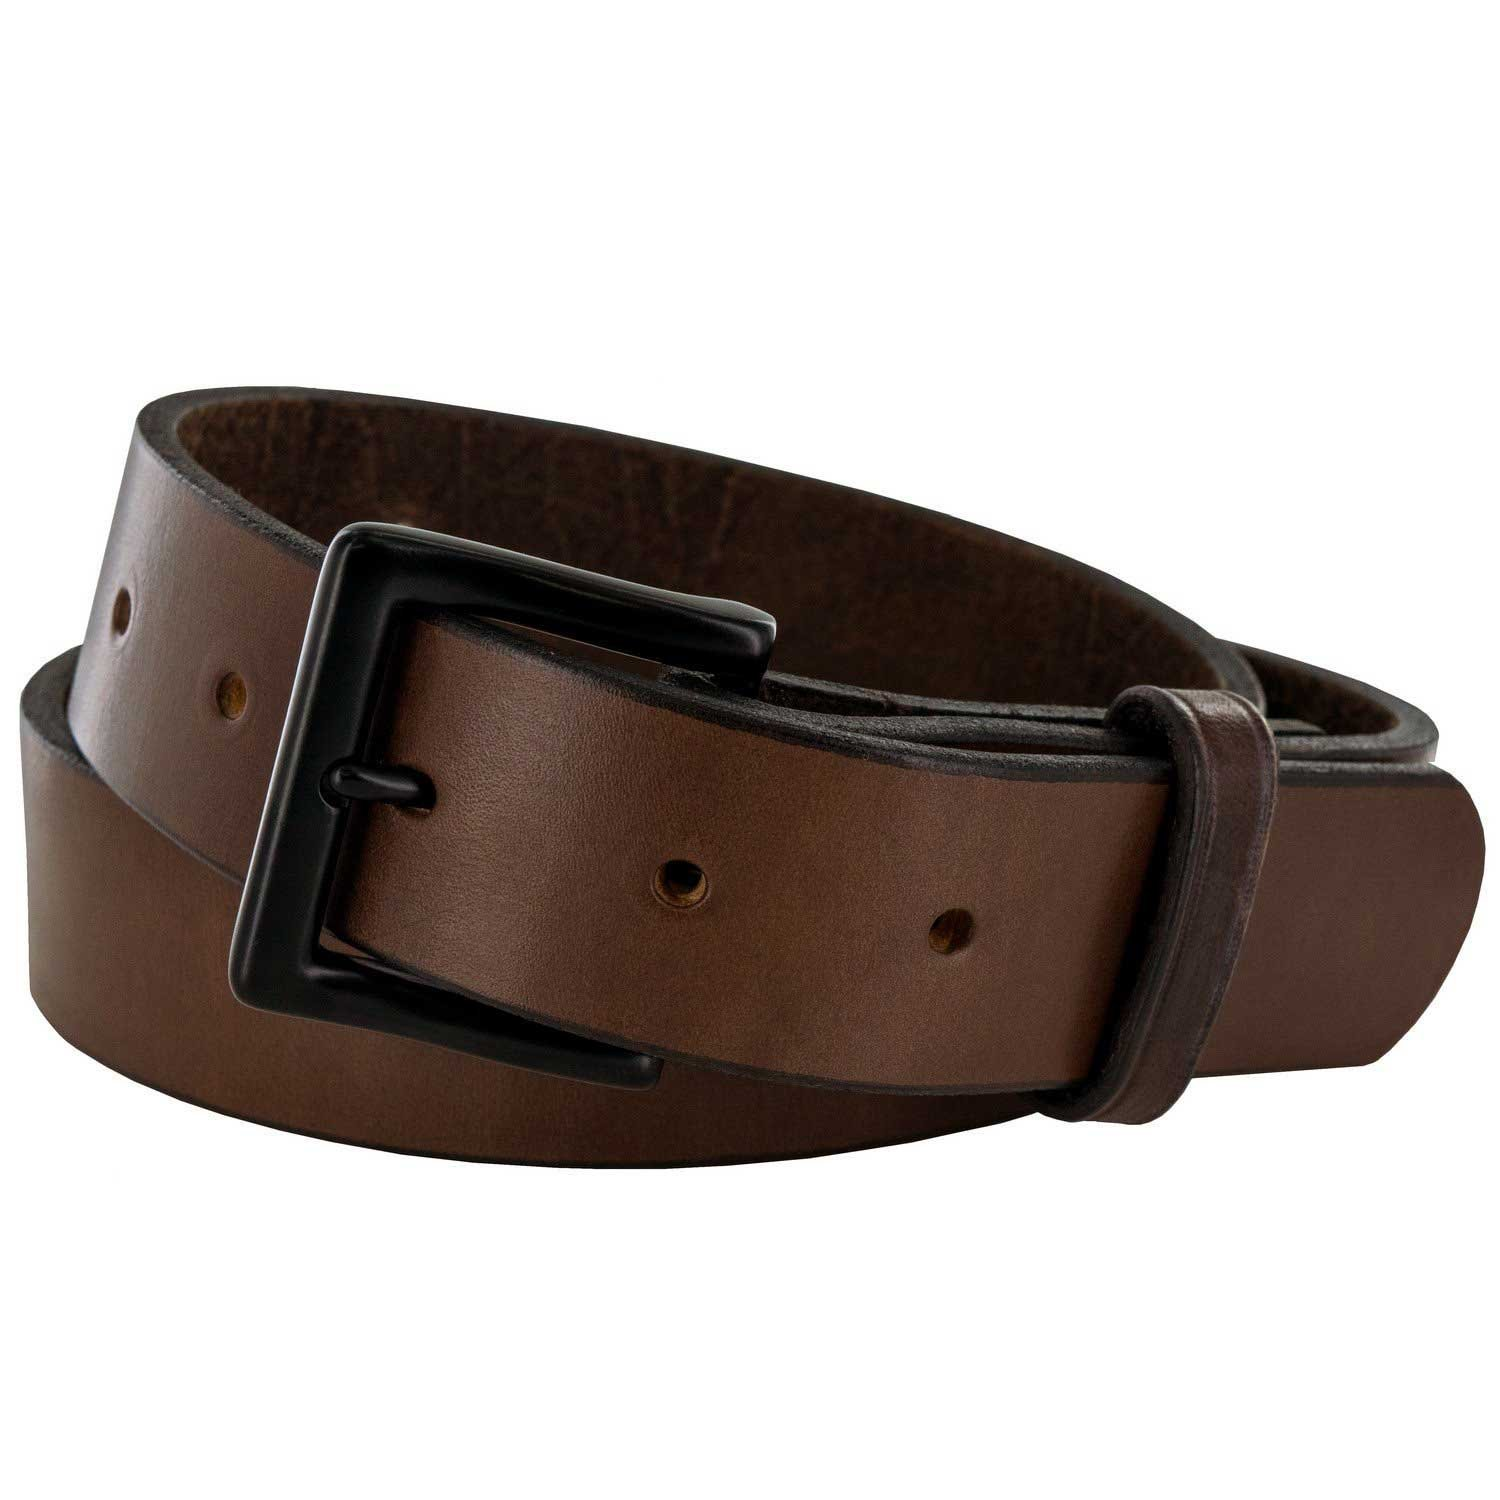 Hanks Everyday - No Break Thick Leather Belt - Mens Heavy Duty Belts- USA Made -100 Year Warranty - Brown - 34